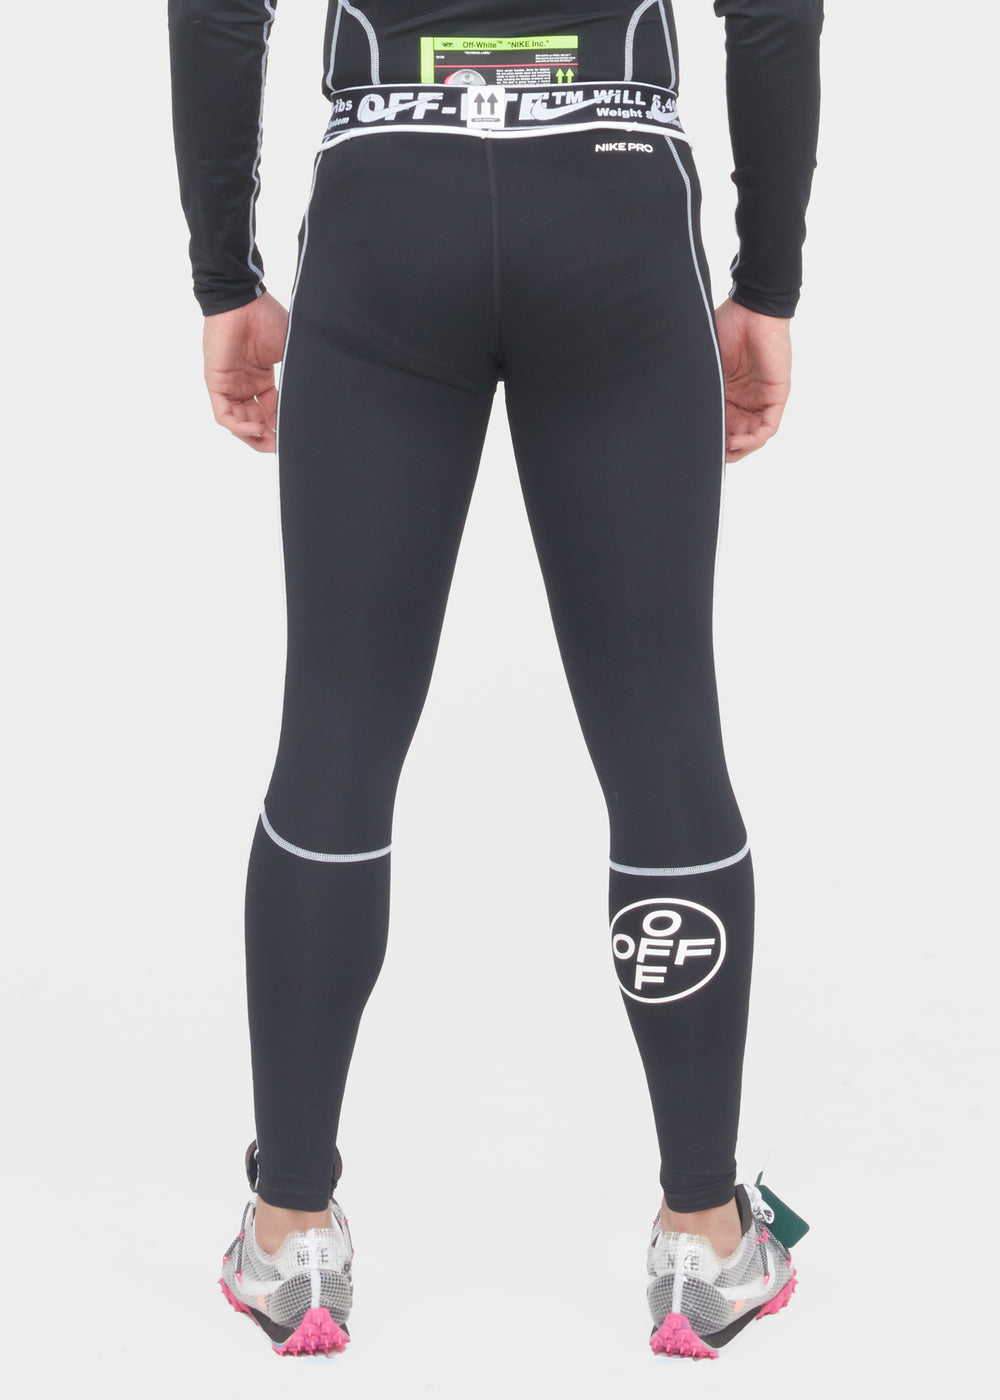 nike leggings uk mens